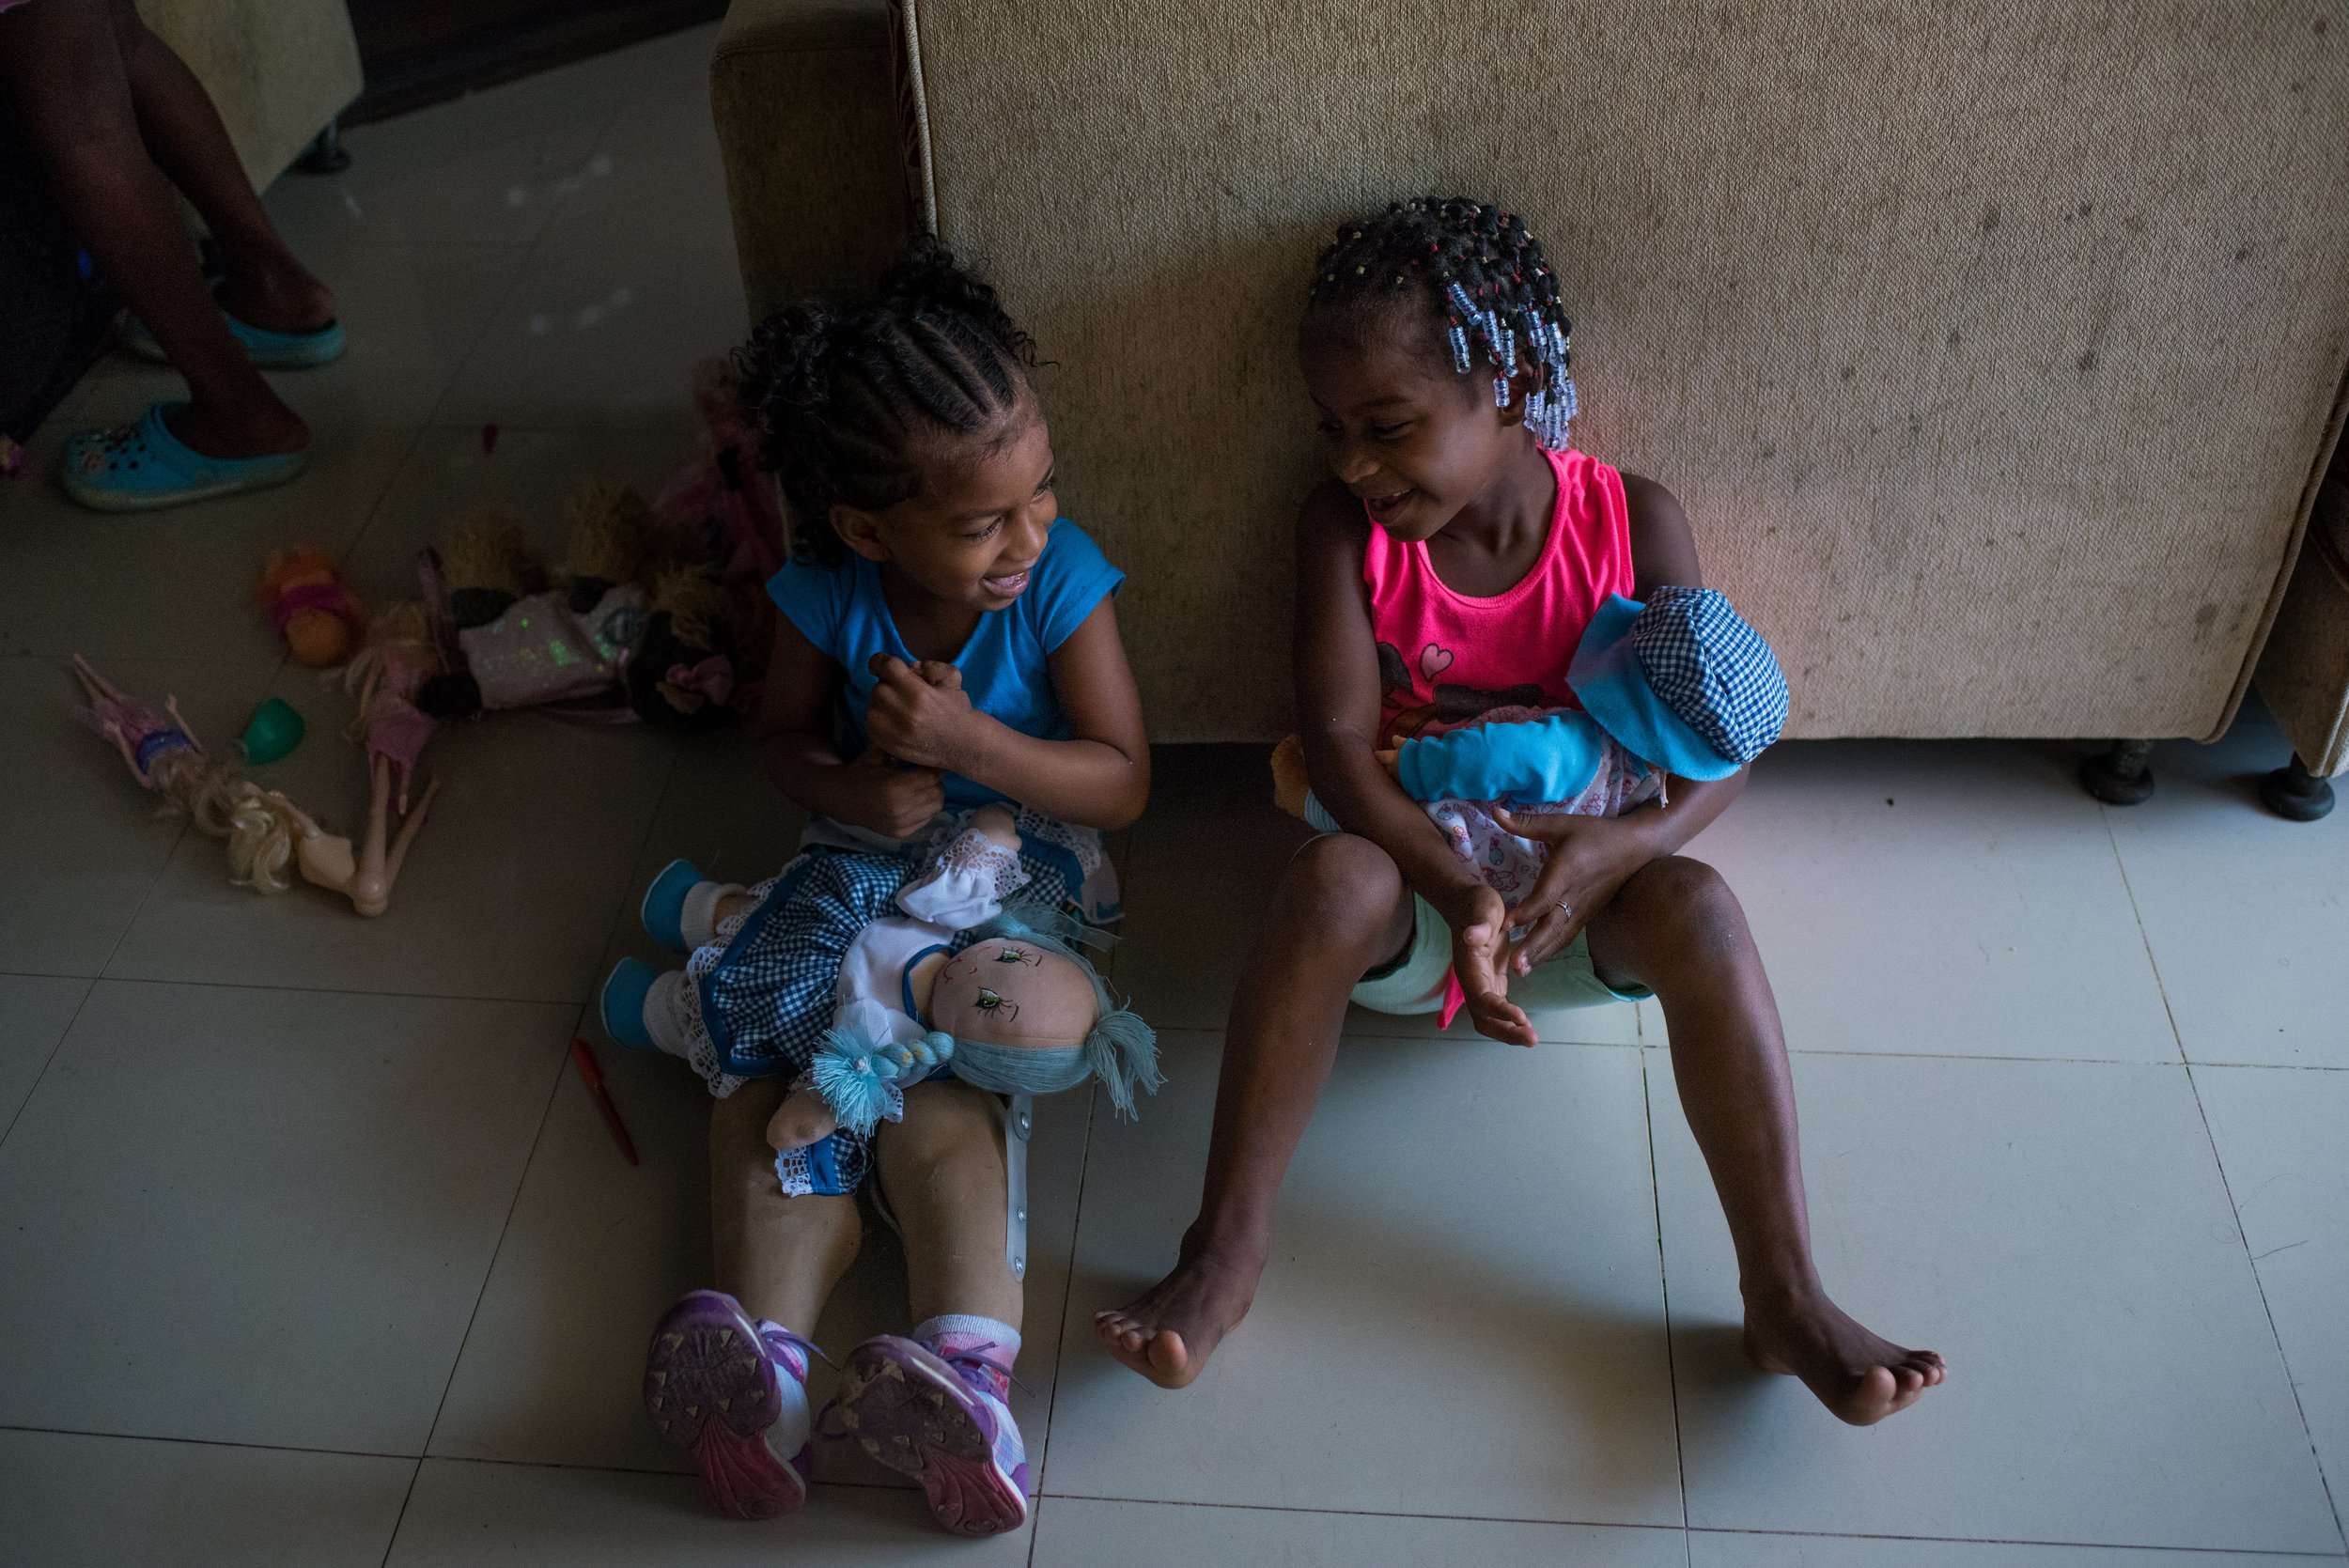 Ebony and her friend play with dolls. By age 3.5, Ebony's surgeries have helped her to live a life where she iscapable of participating in everyday activities.